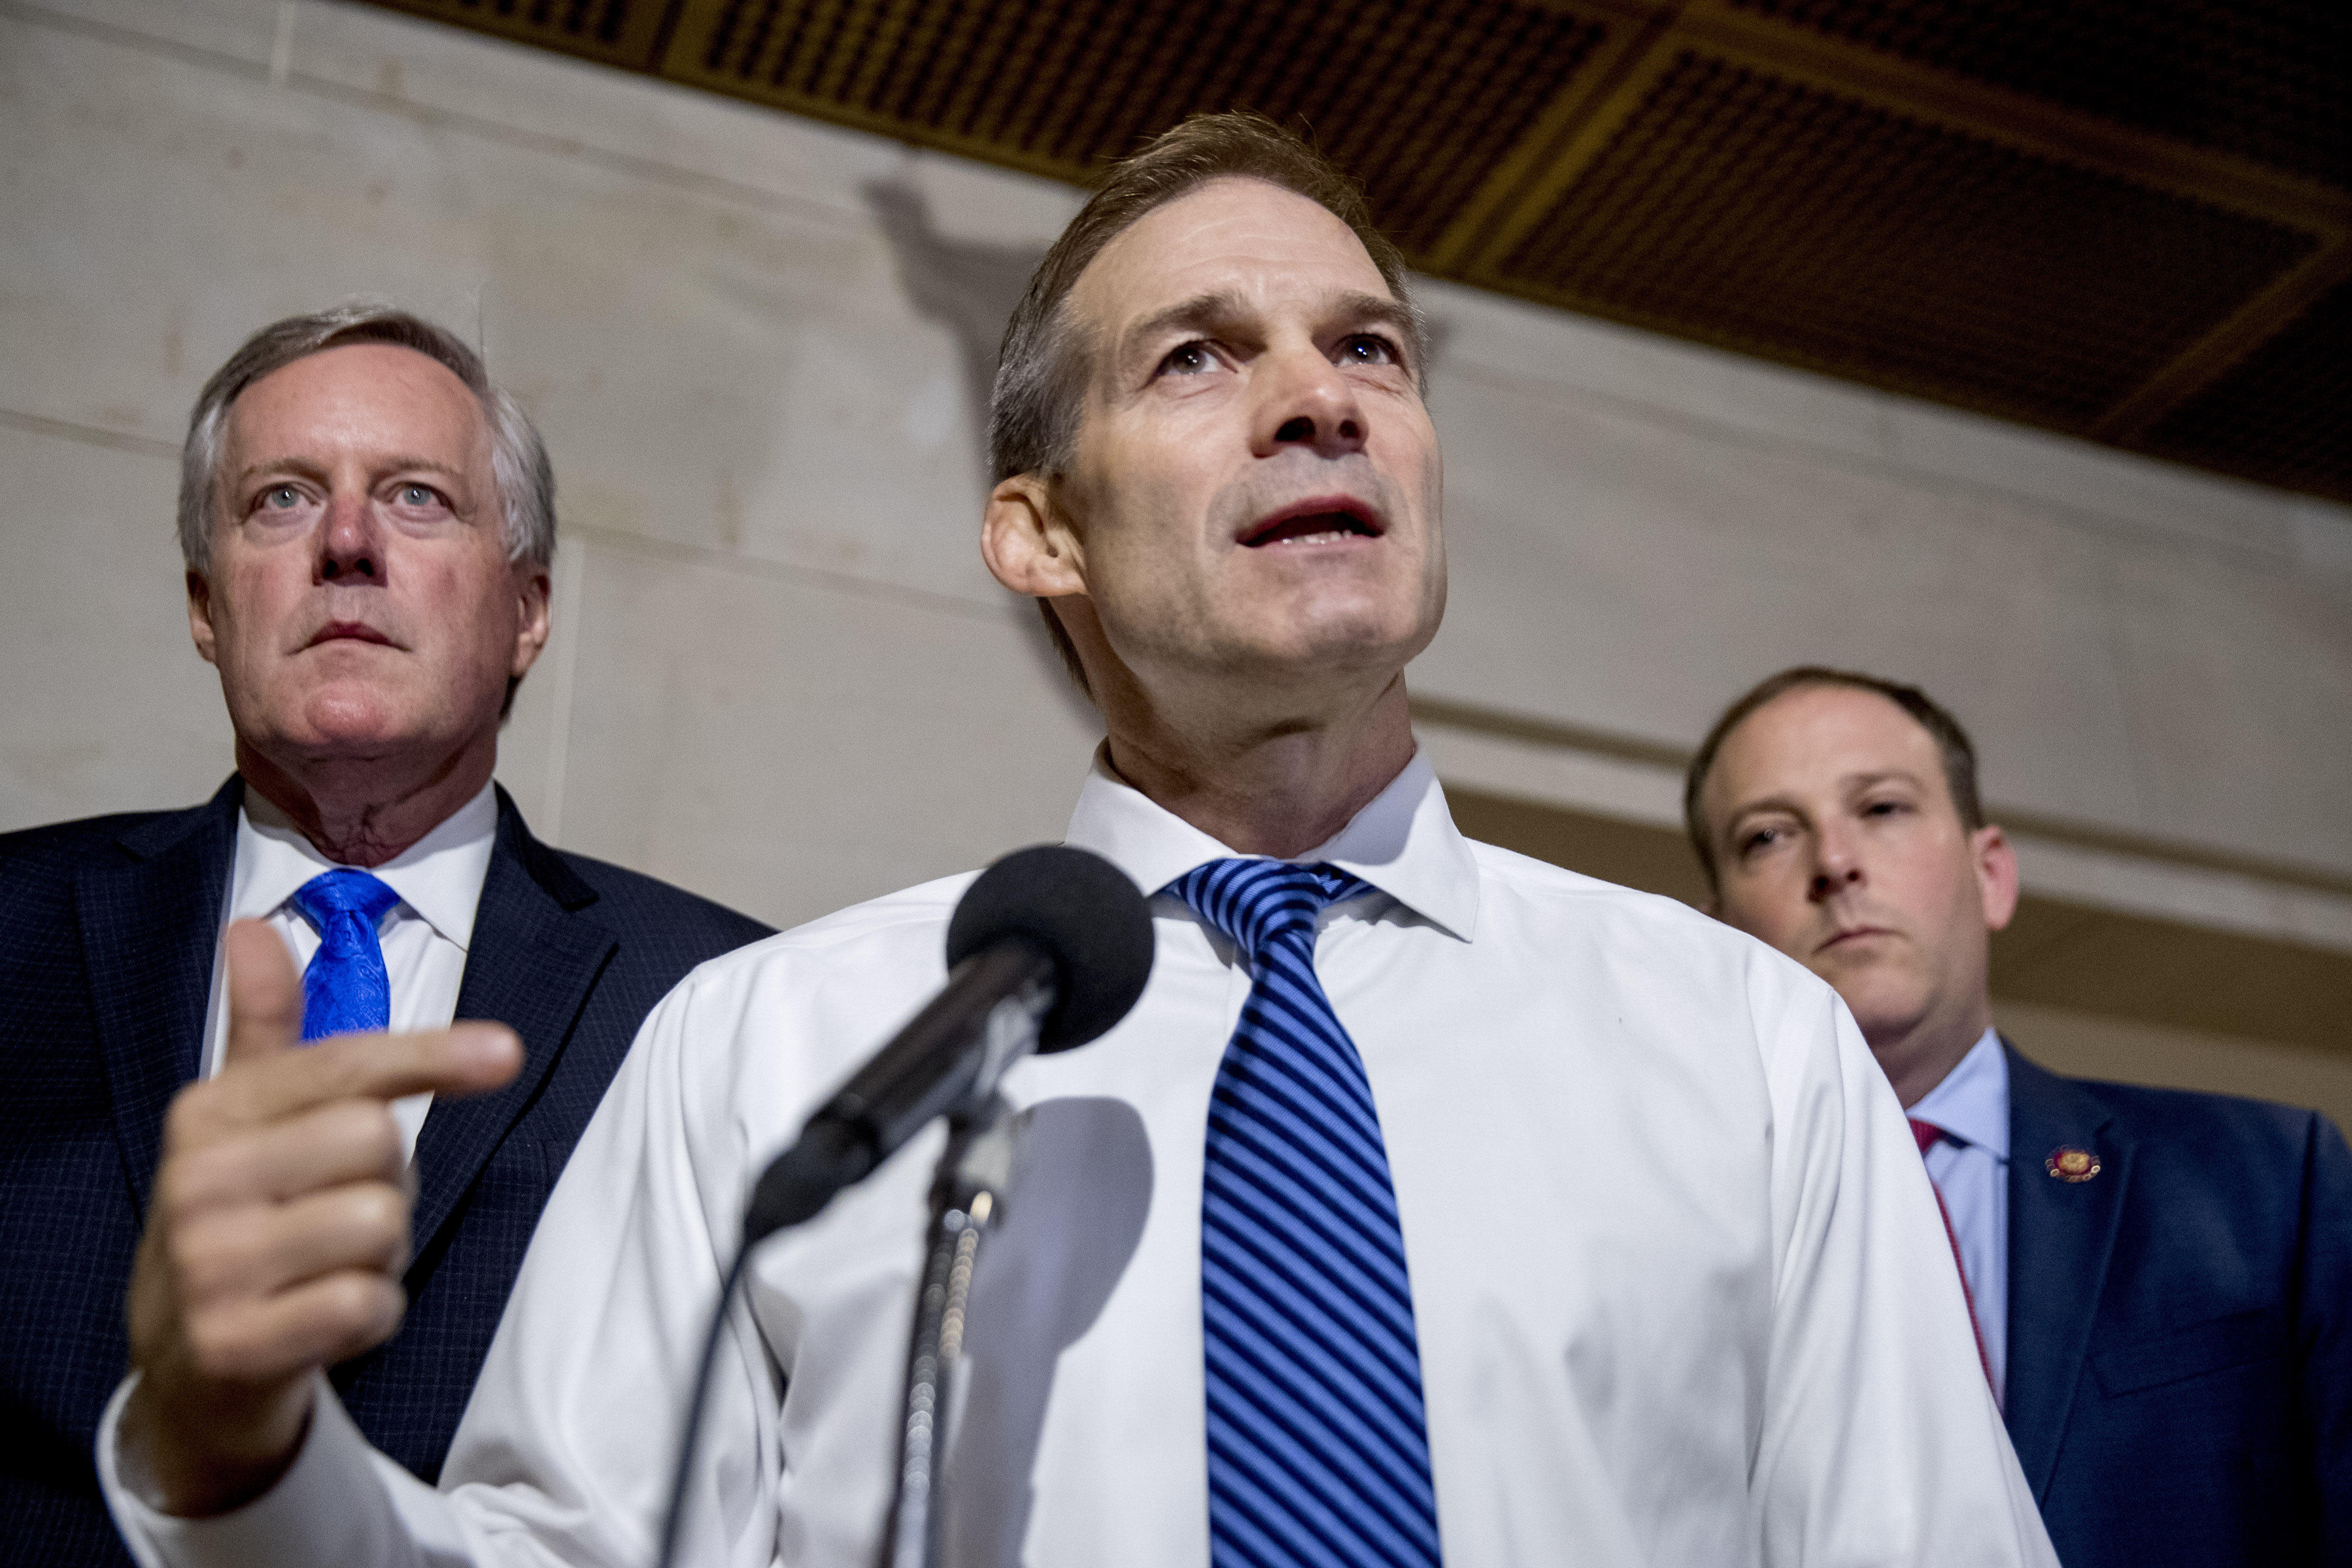 Jim Jordan to be moved to House Intelligence Committee